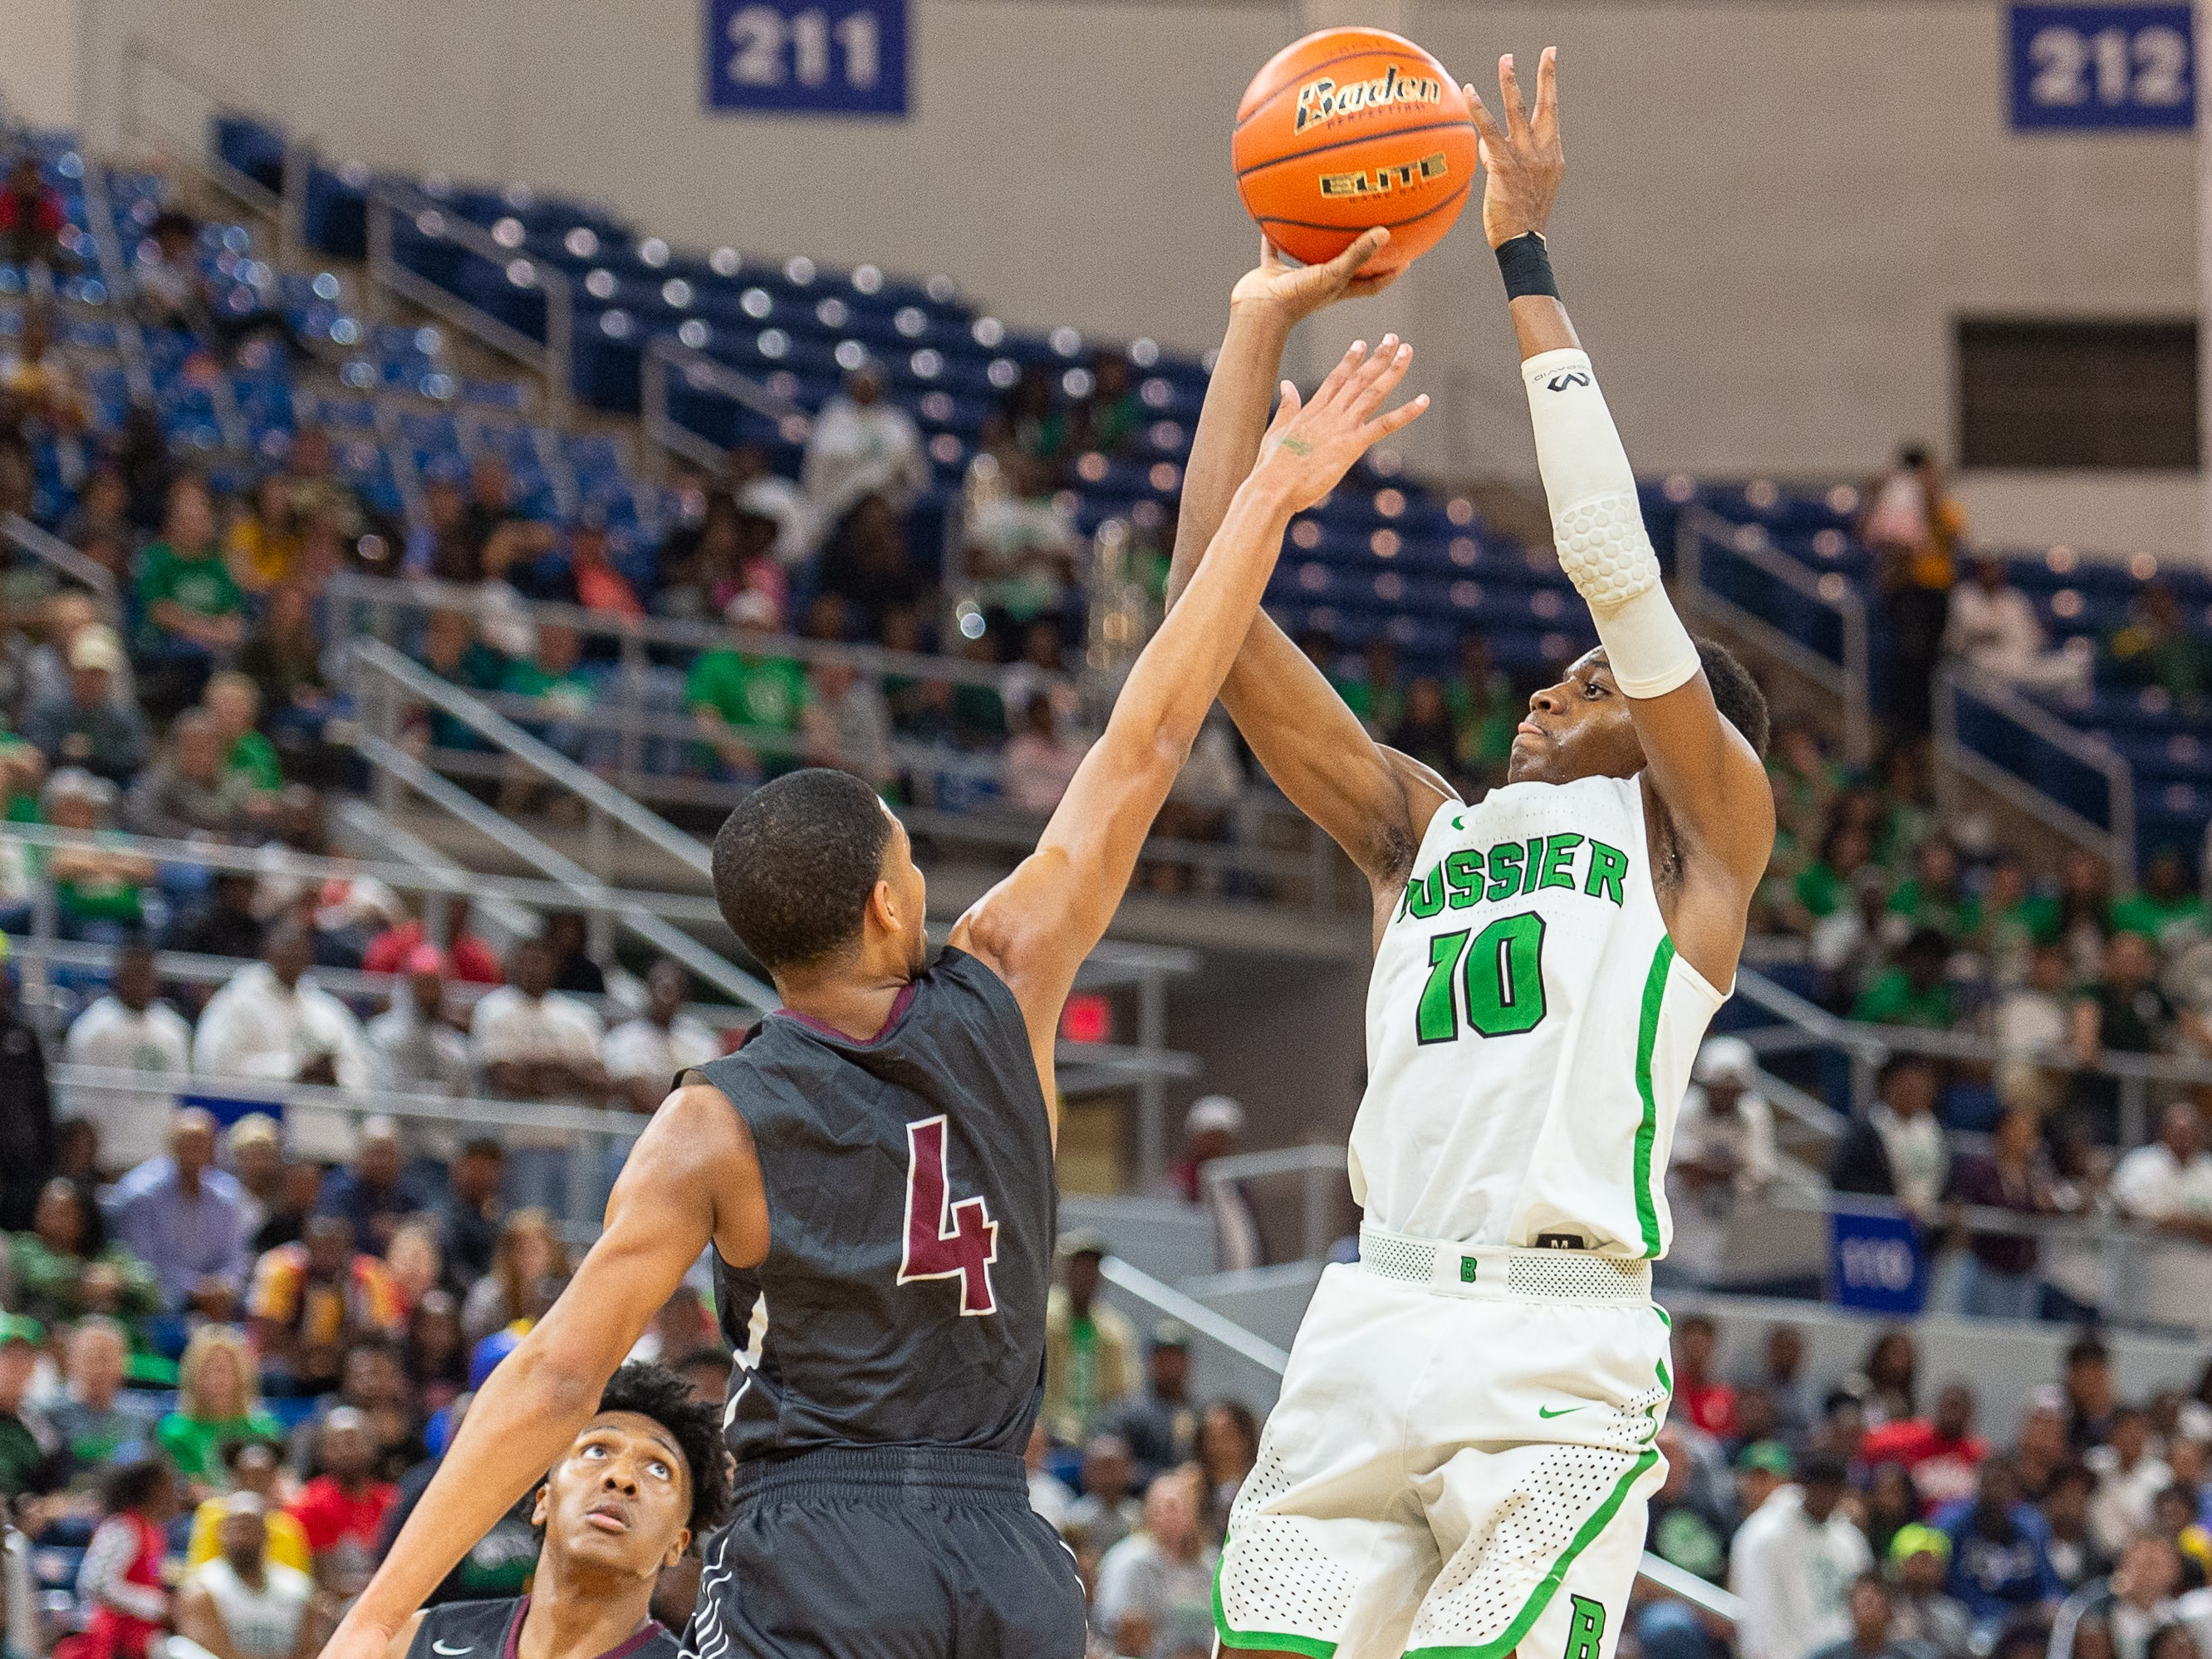 Kaalas Roots takes a shot as Breaux Bridge takes on Bossier in the Allstate Sugar Bowl/LHSAA Boys' Marsh Madness State Championship. Friday, March 8, 2019.